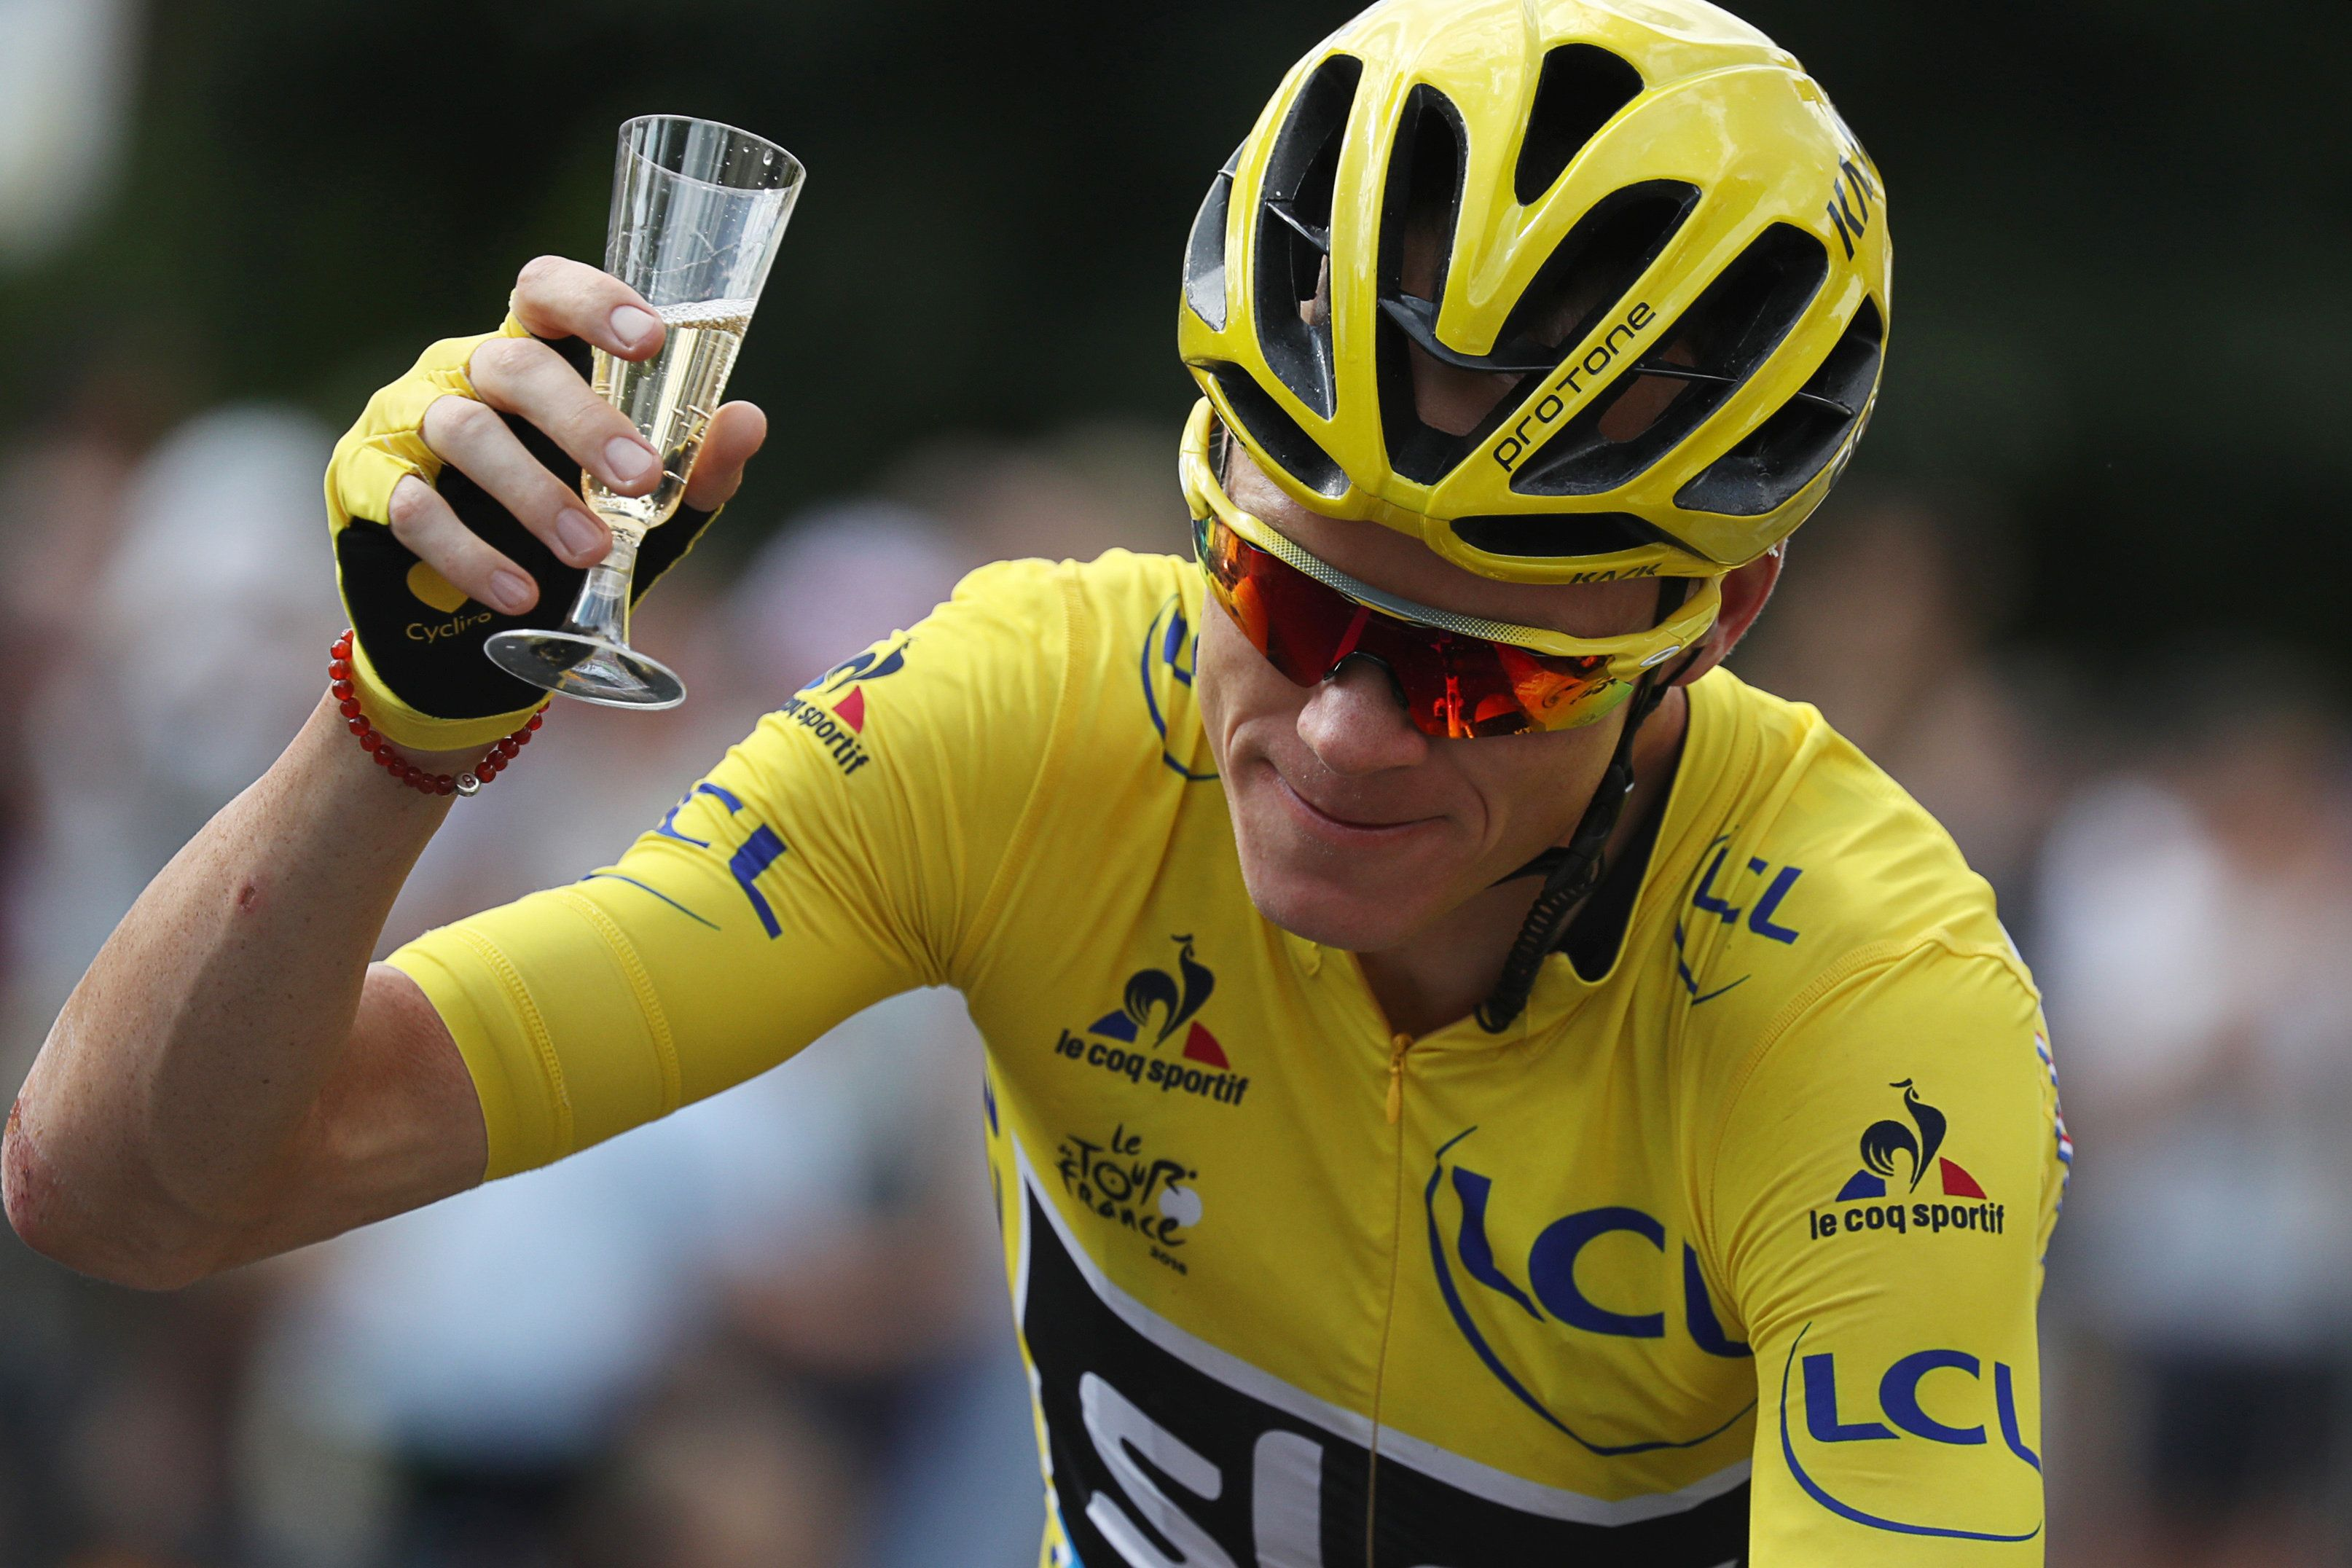 Yellow jersey leader Team Sky rider Chris Froome of Britain holds a glass of